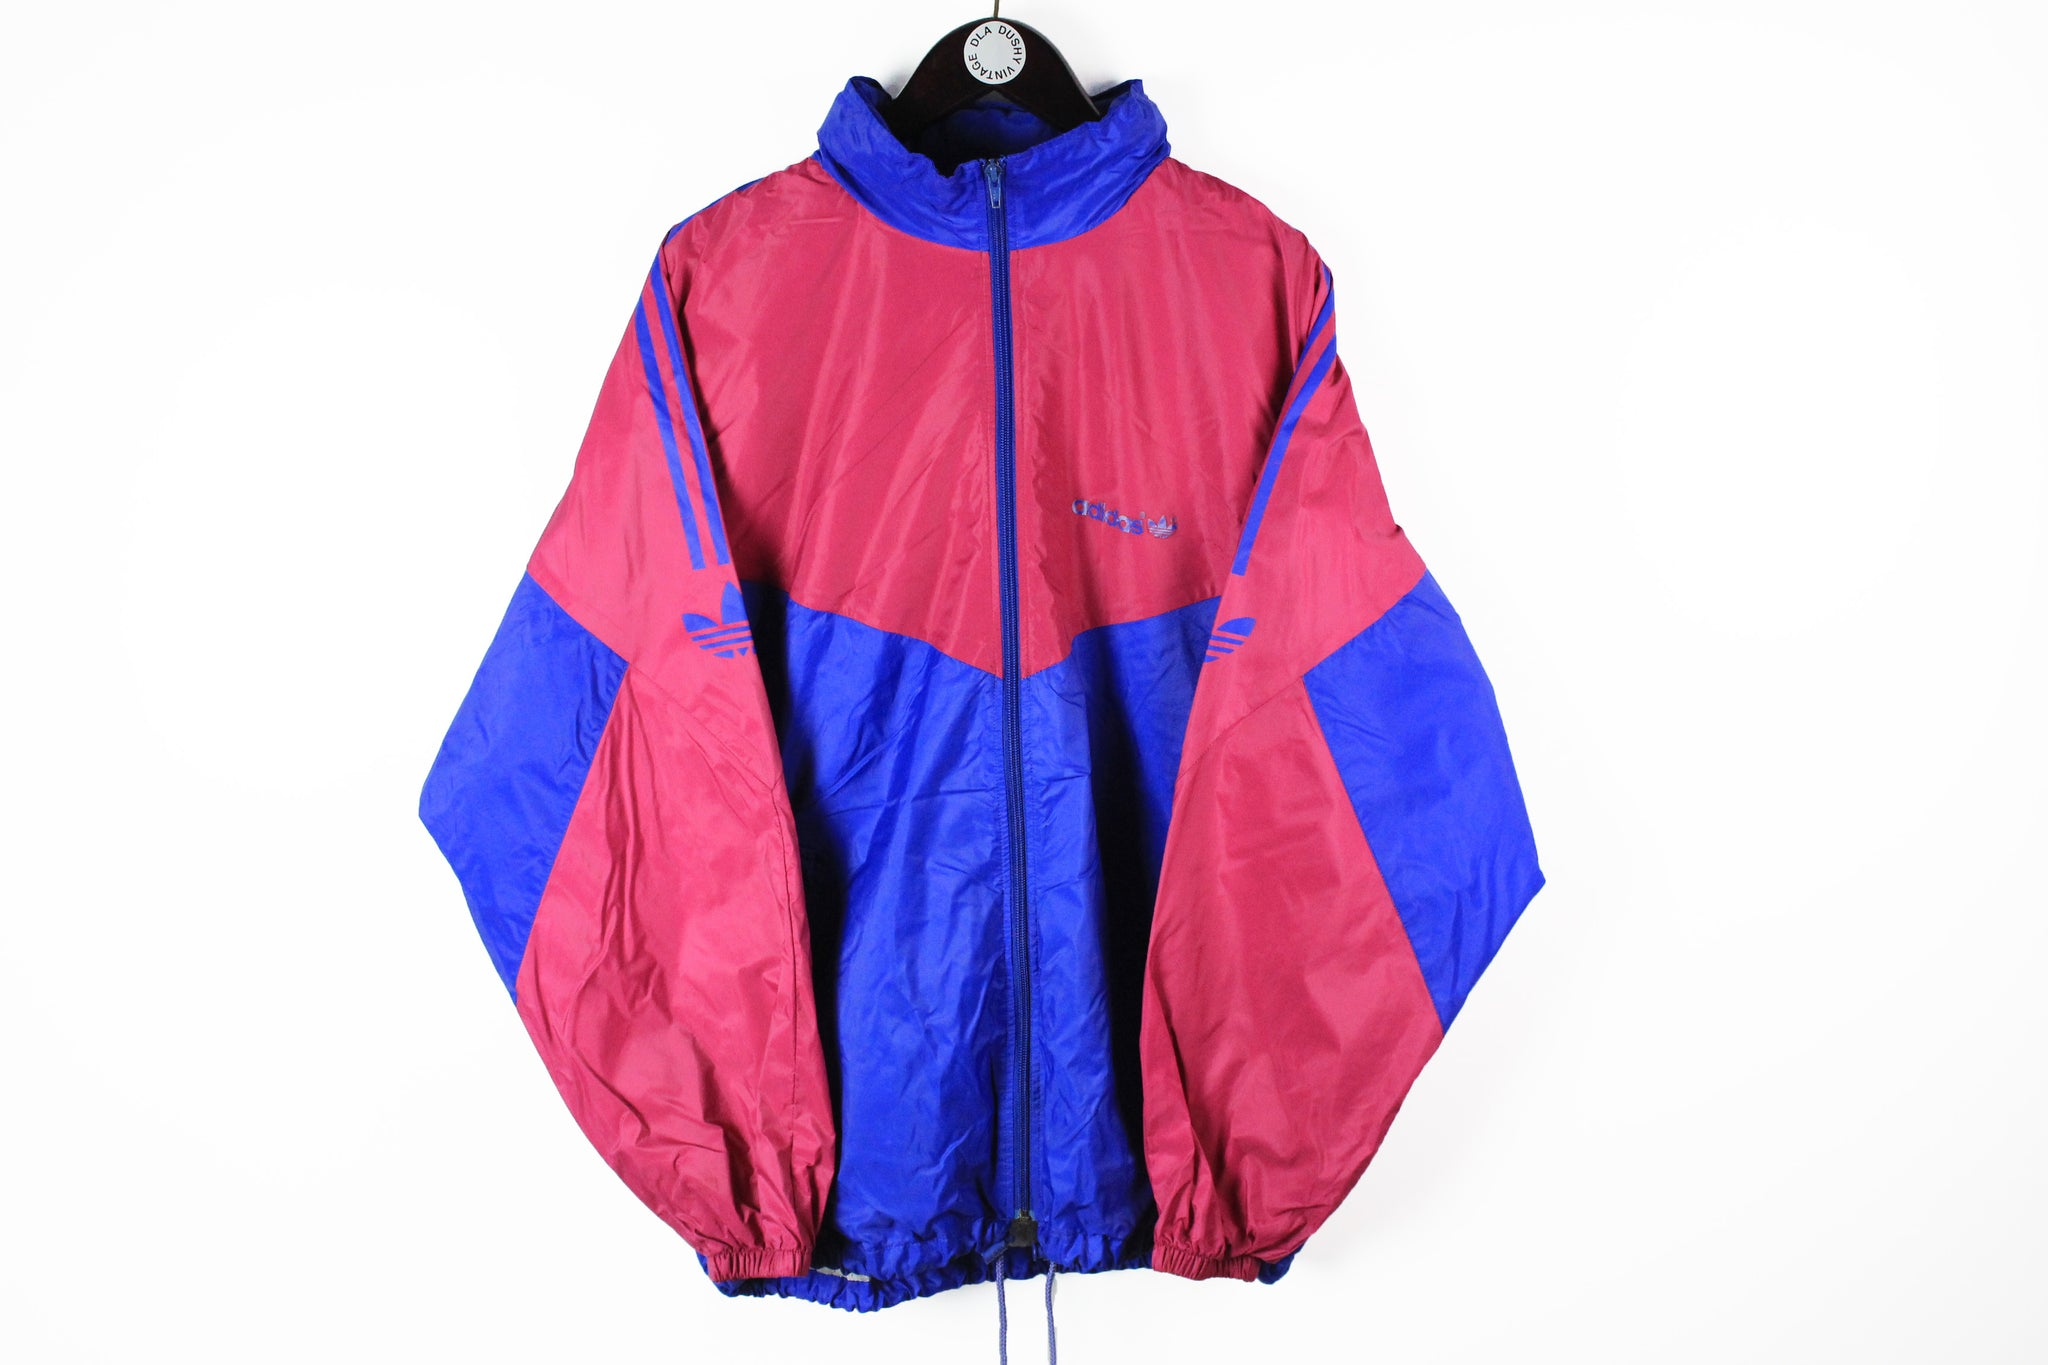 Vintage Adidas Jacket Large pink blue 90s sport windbreaker retro style full zip jacket